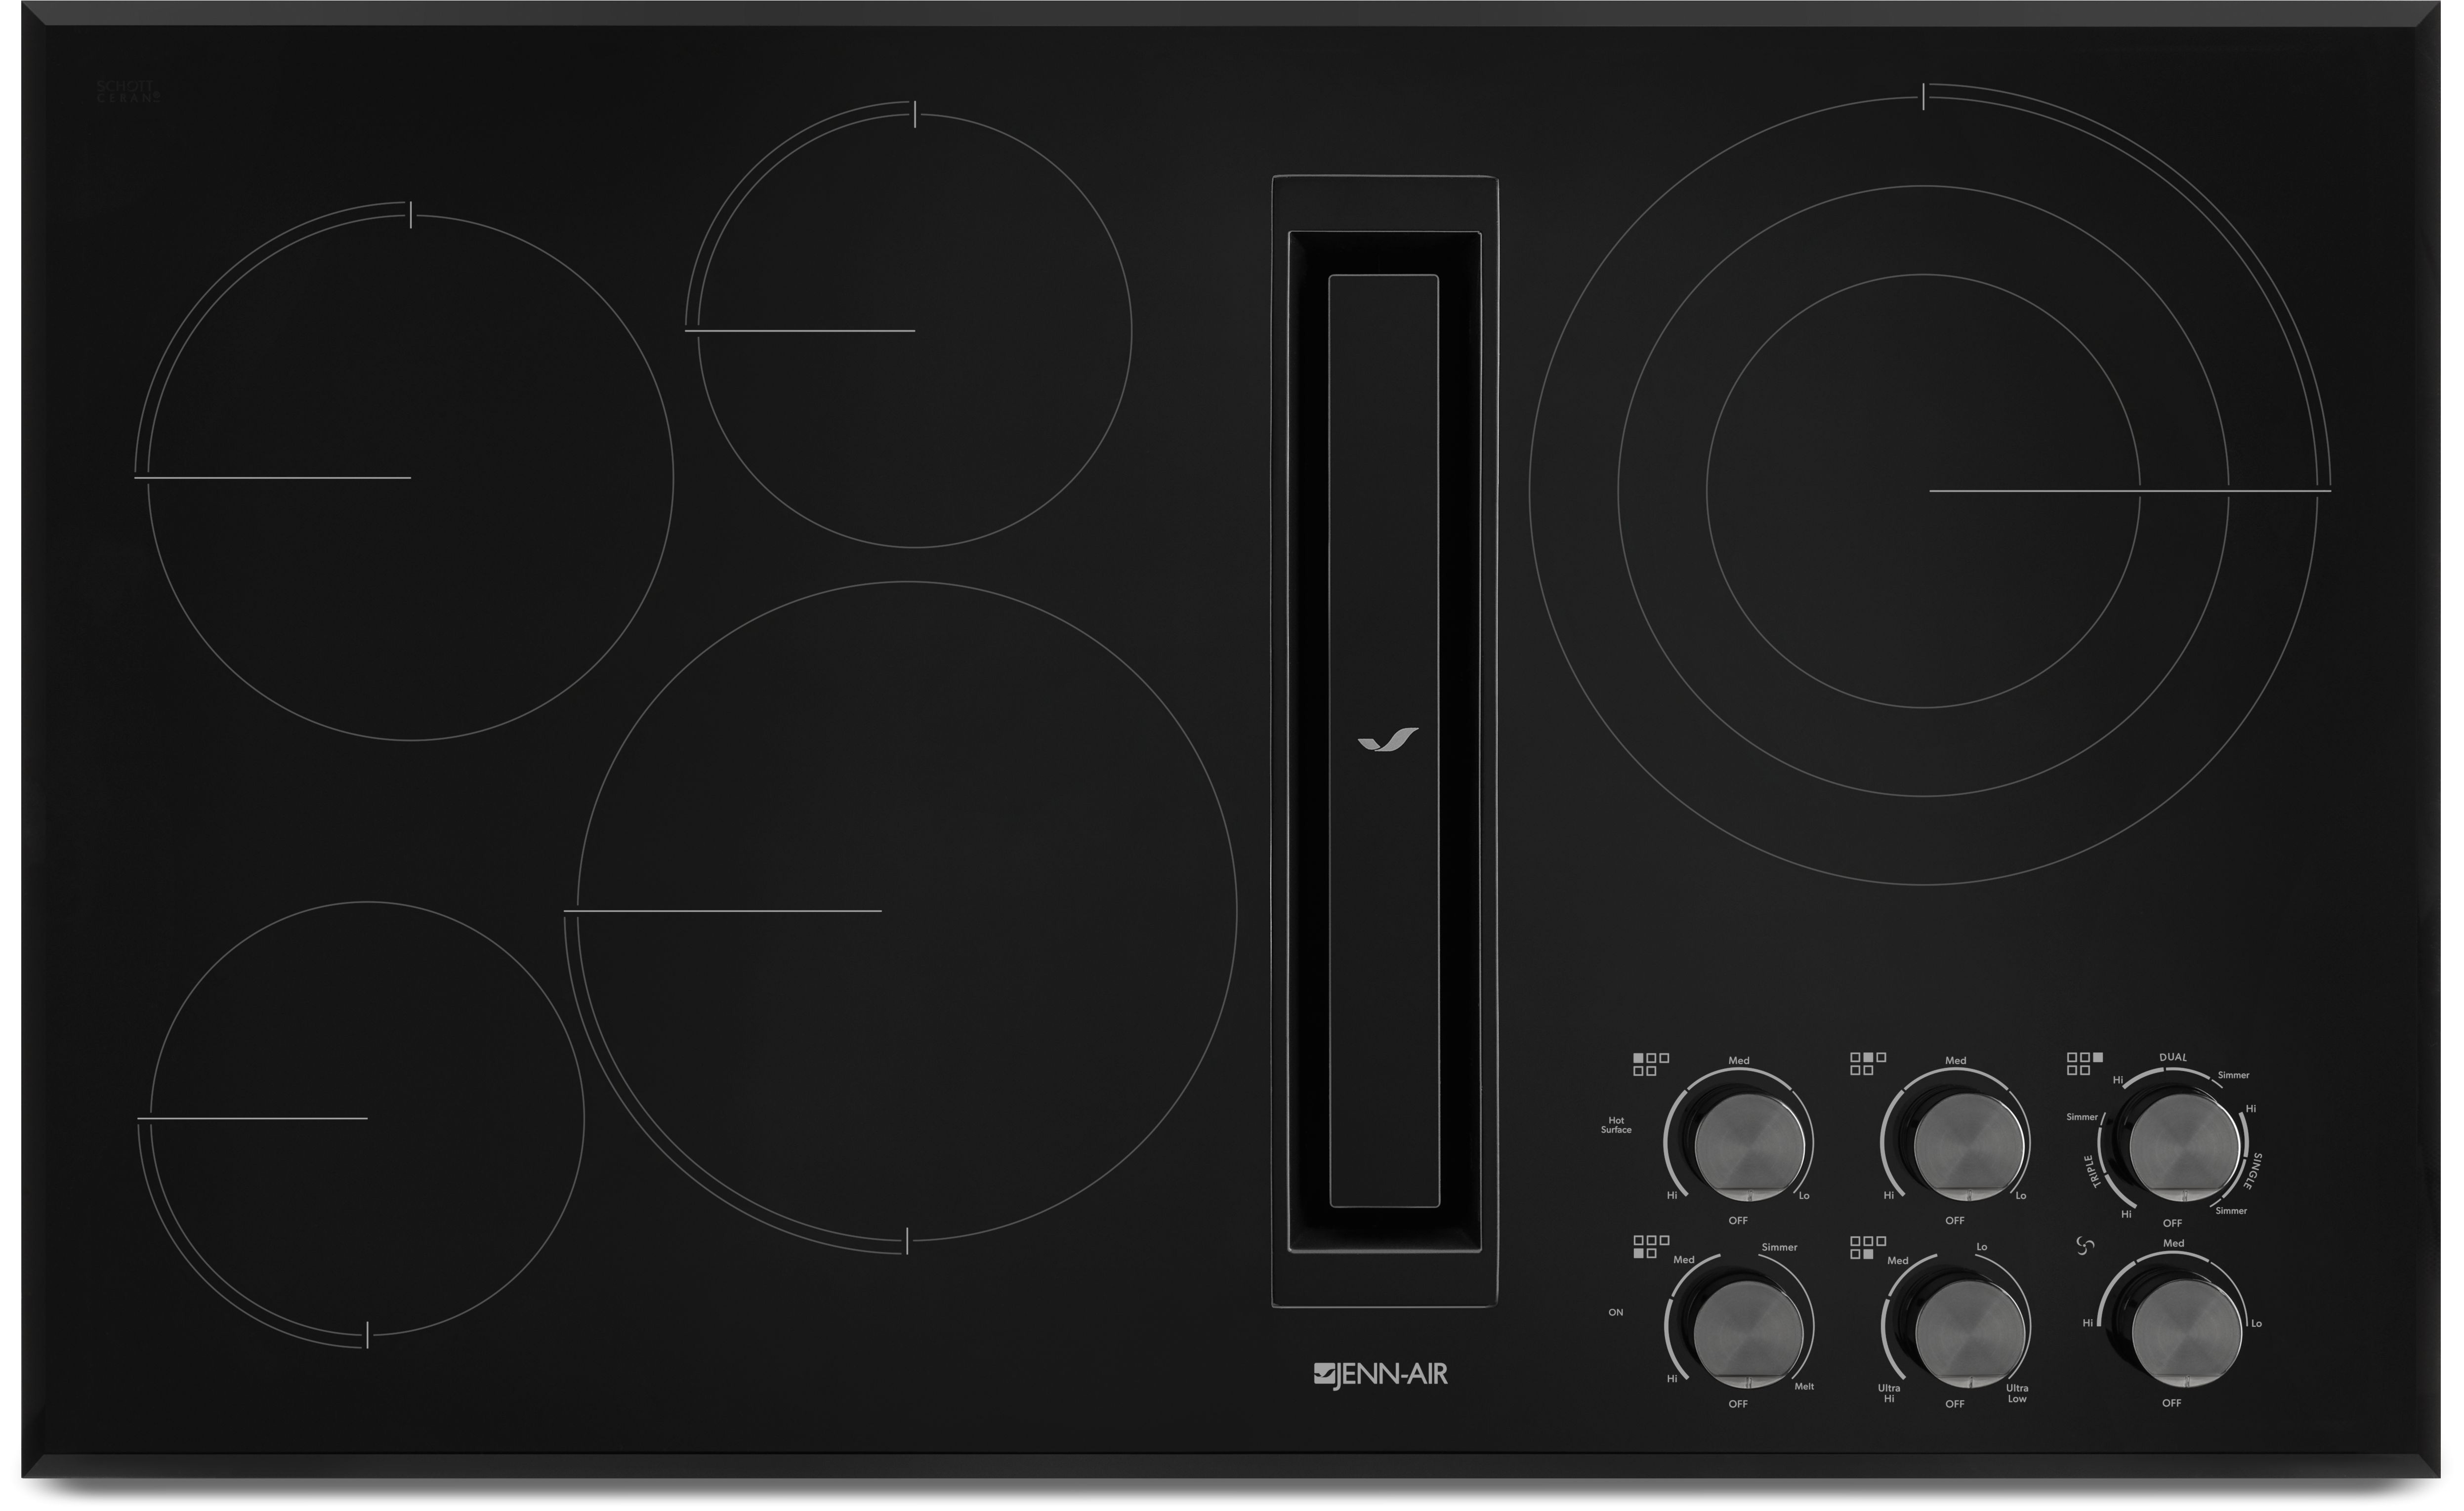 Appliance Stores In Duluth Mn Jenn Aira 36 Electric Downdraft Cooktop Jed3536g Appliances